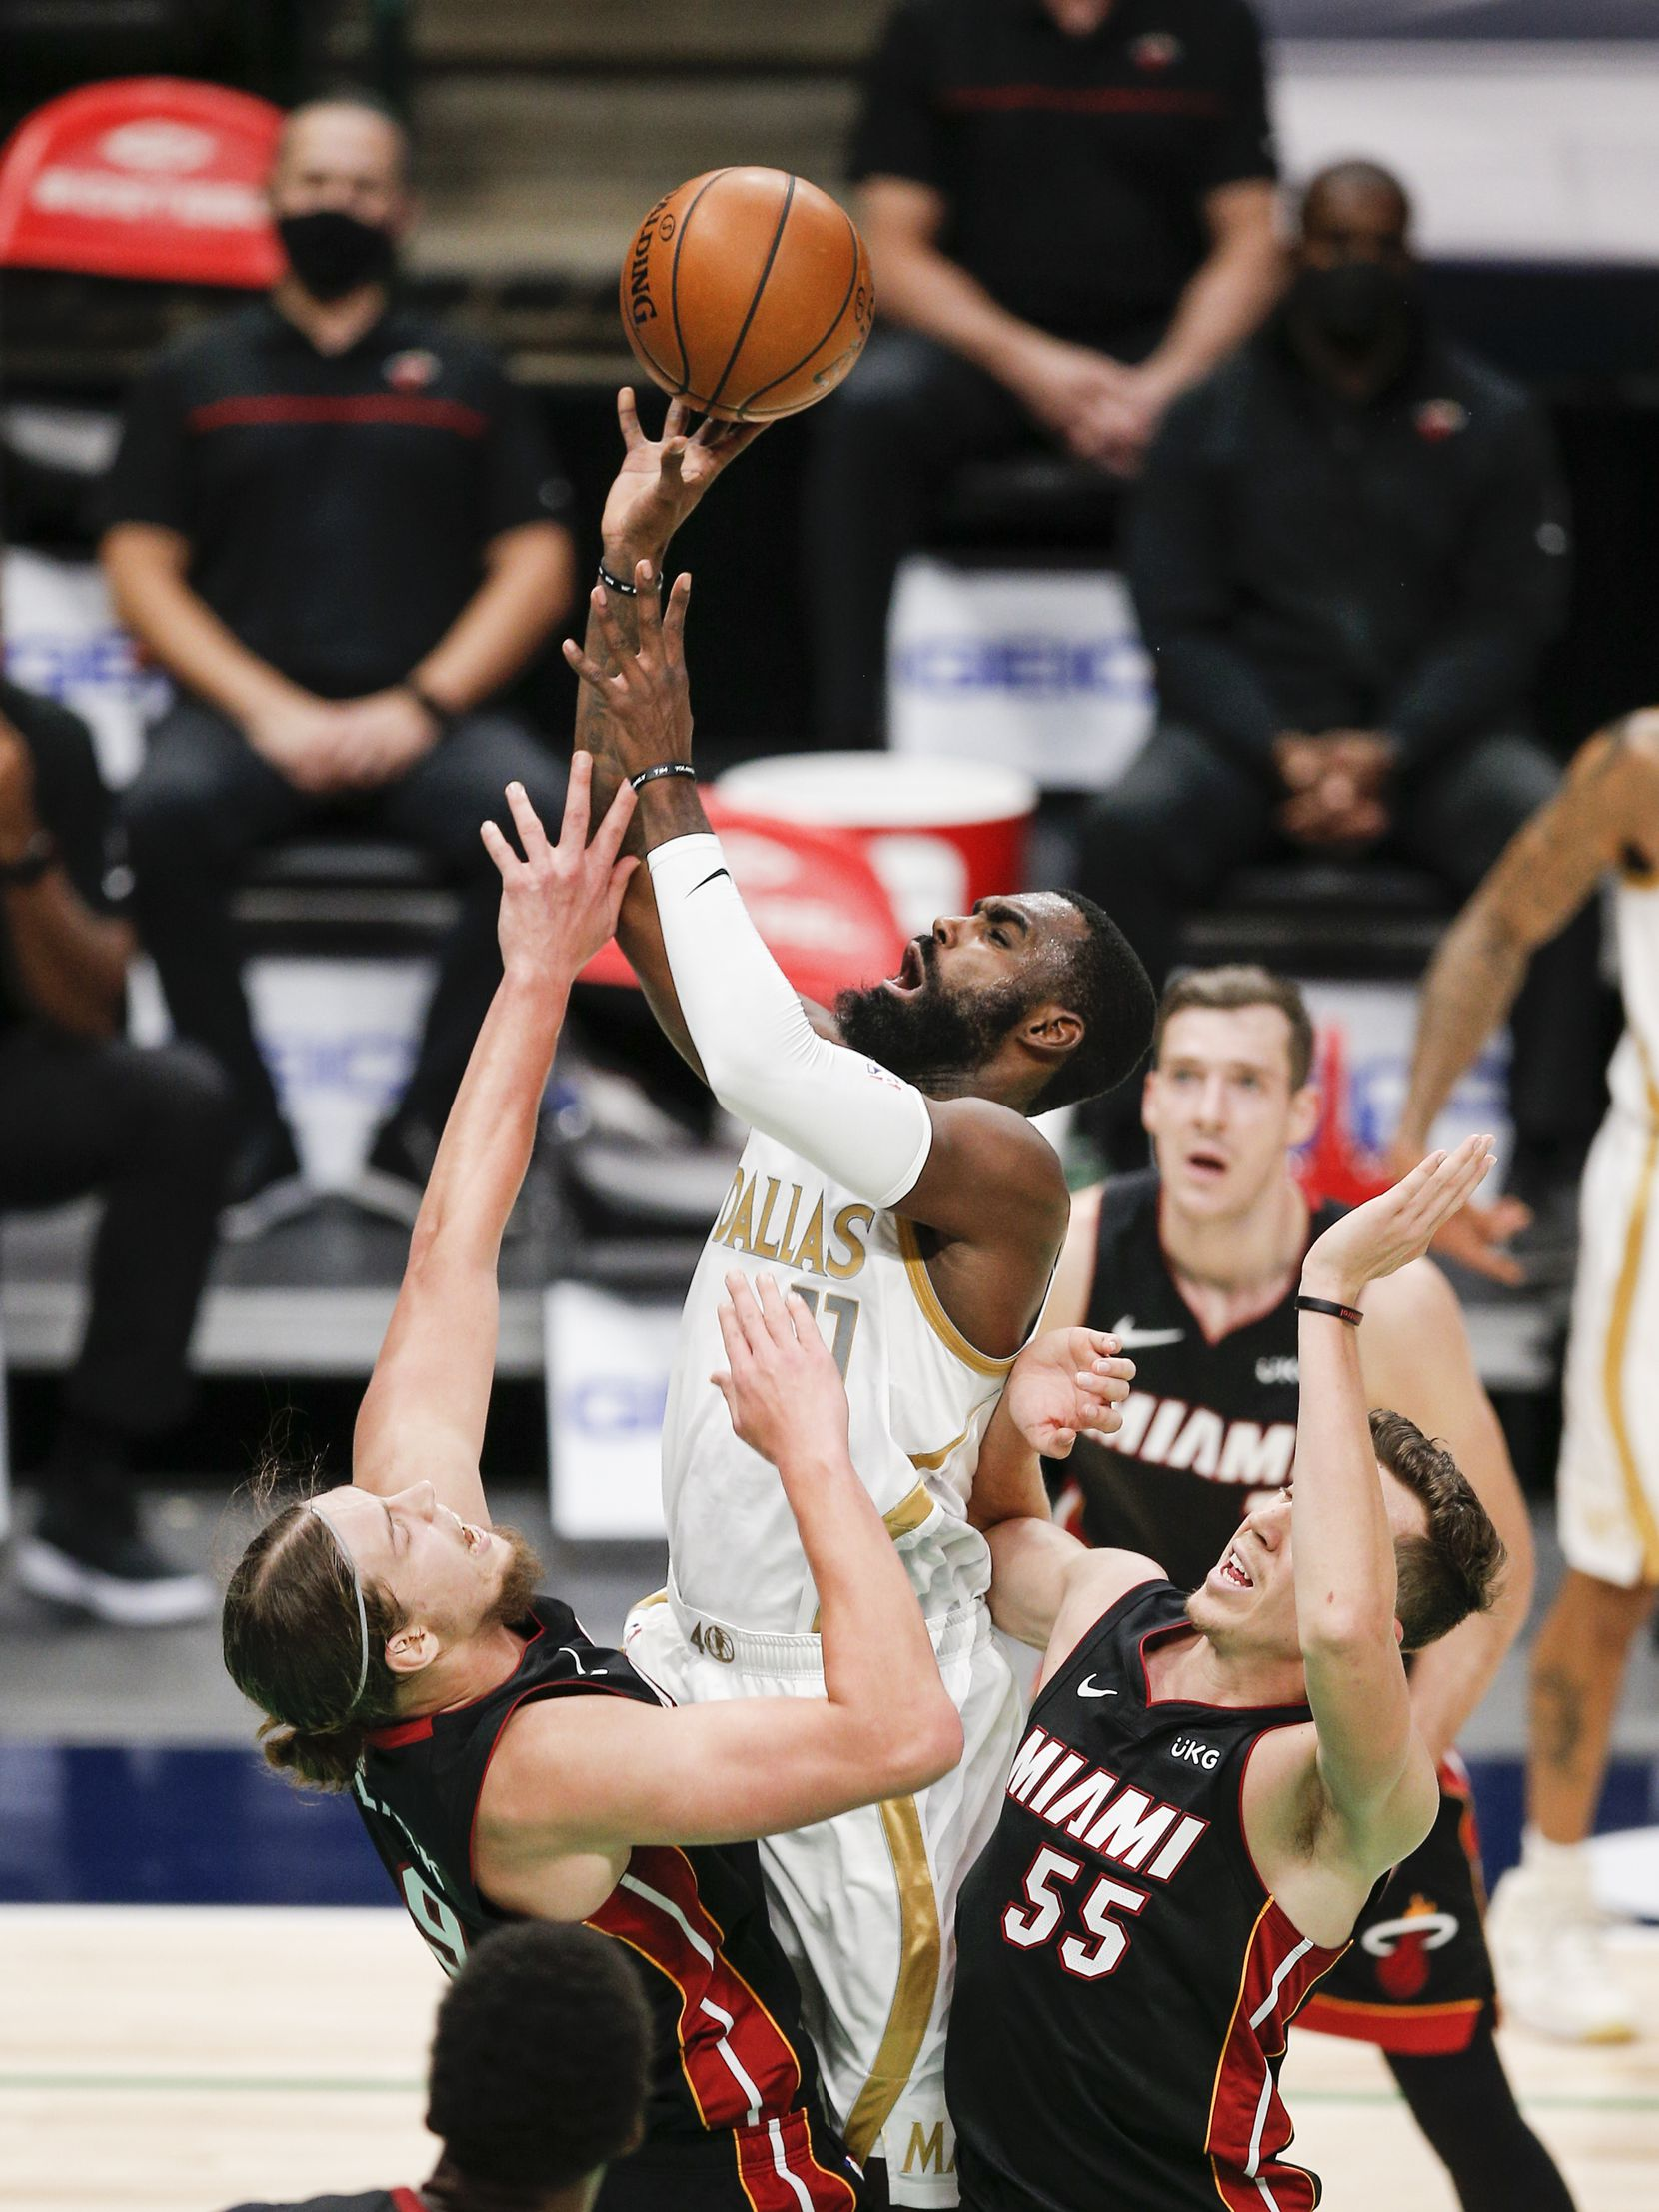 Dallas Mavericks guard Tim Hardaway Jr. (11) attempts a shot as Miami Heat forwards Kelly Olynyk (9) and Duncan Robinson (55) defend during the second half of an NBA basketball game, Friday, January 1, 2021.  Dallas won 93-83. (Brandon Wade/Special Contributor)